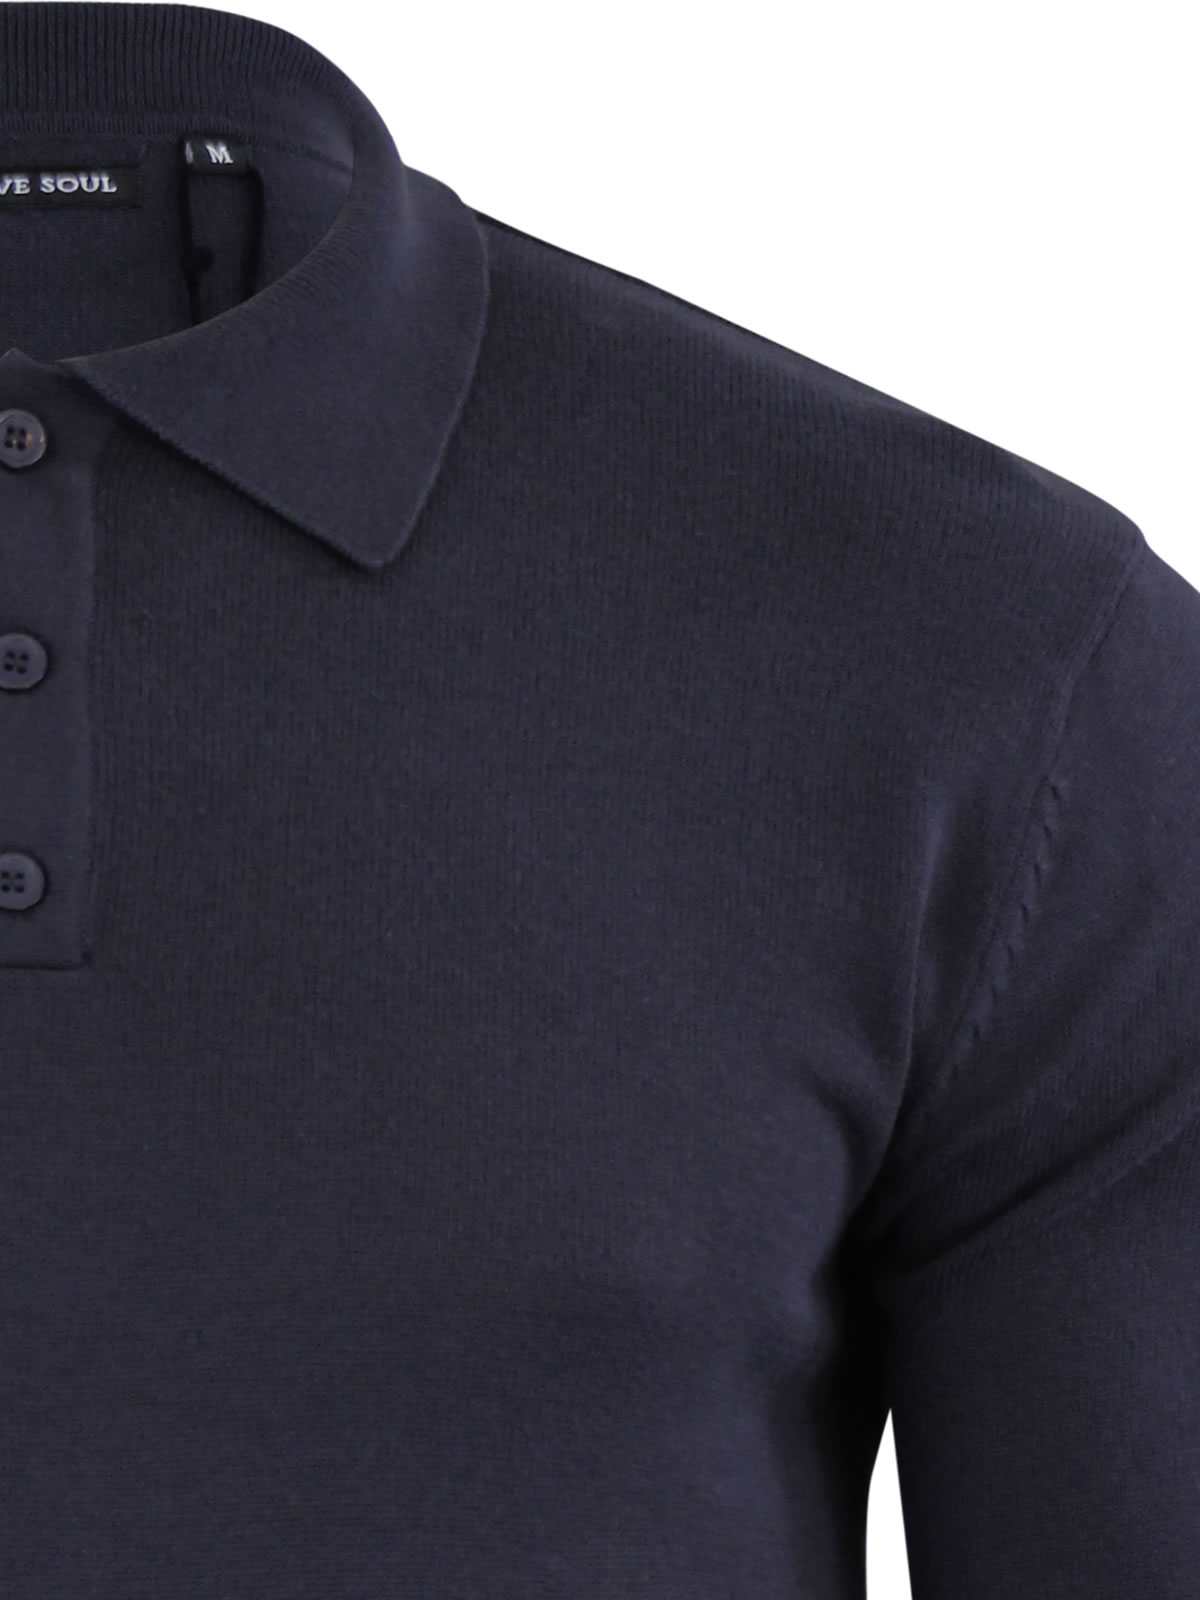 5bd00e115 Mens Knitted Polo T Shirt Brave Soul Placket Collared Jumper   eBay